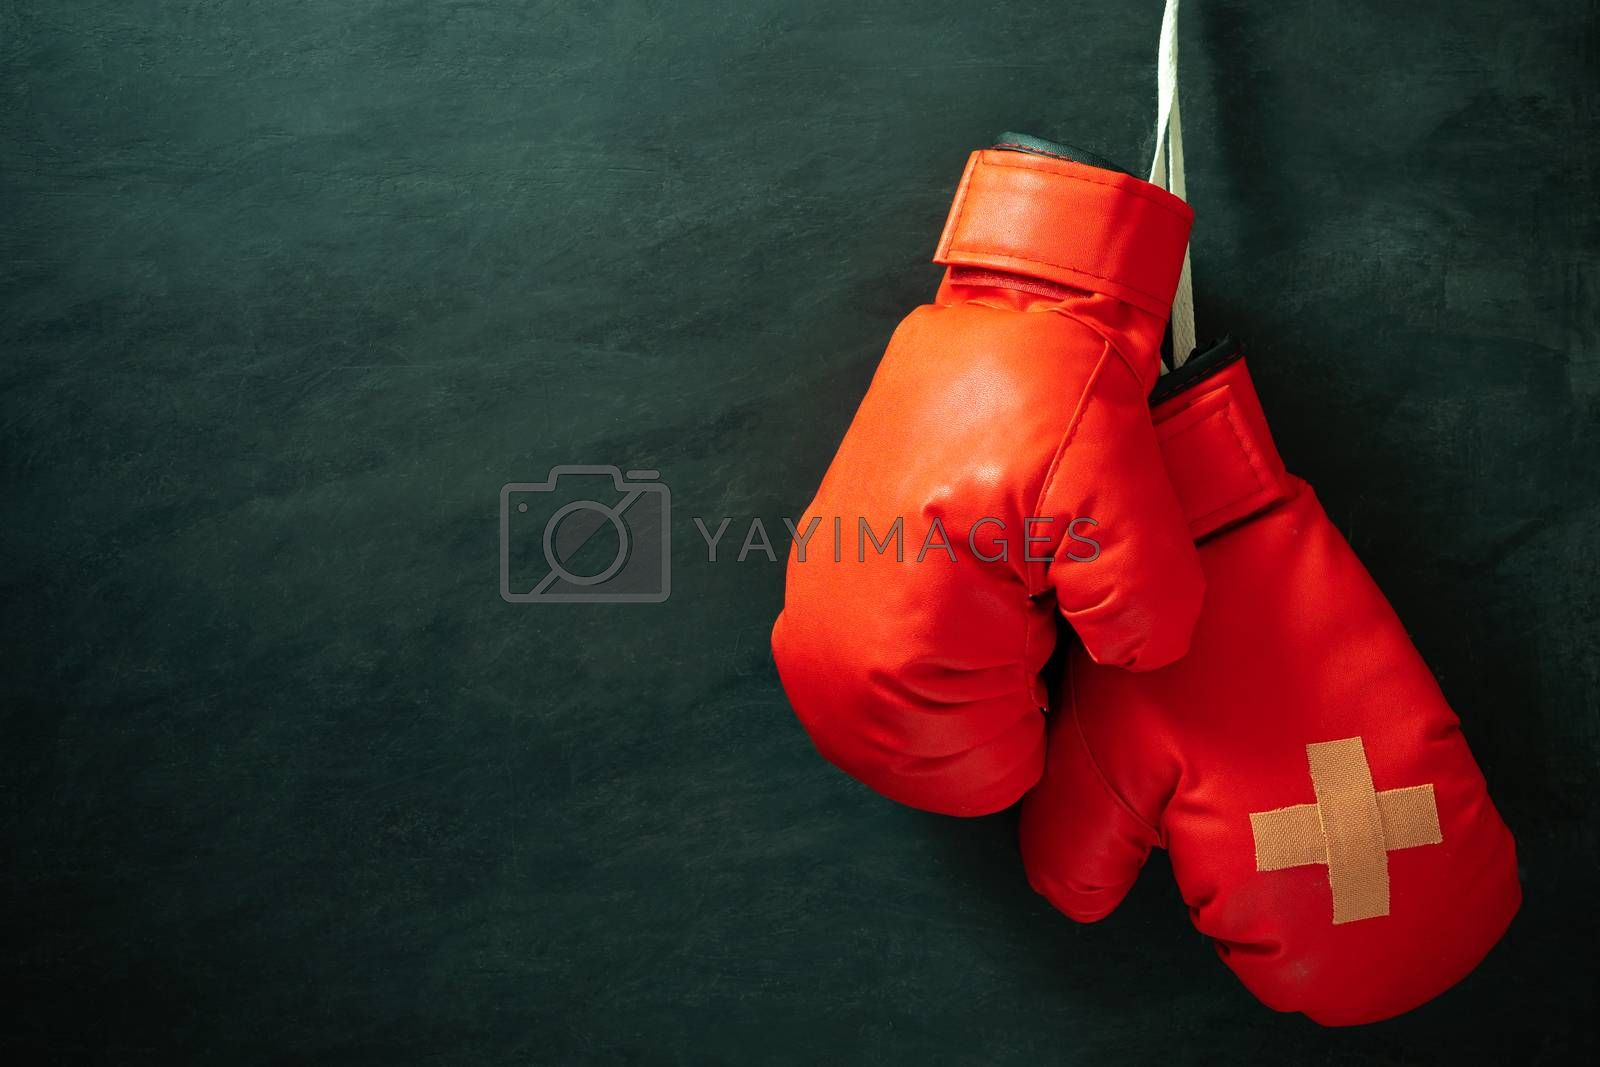 Red boxing gloves hung on black cement wall in darkness with lighting. Adhesive plaster across each other on boxing gloves. Idea of hurt or combat losing business rivals. Fighting giving up boxing.